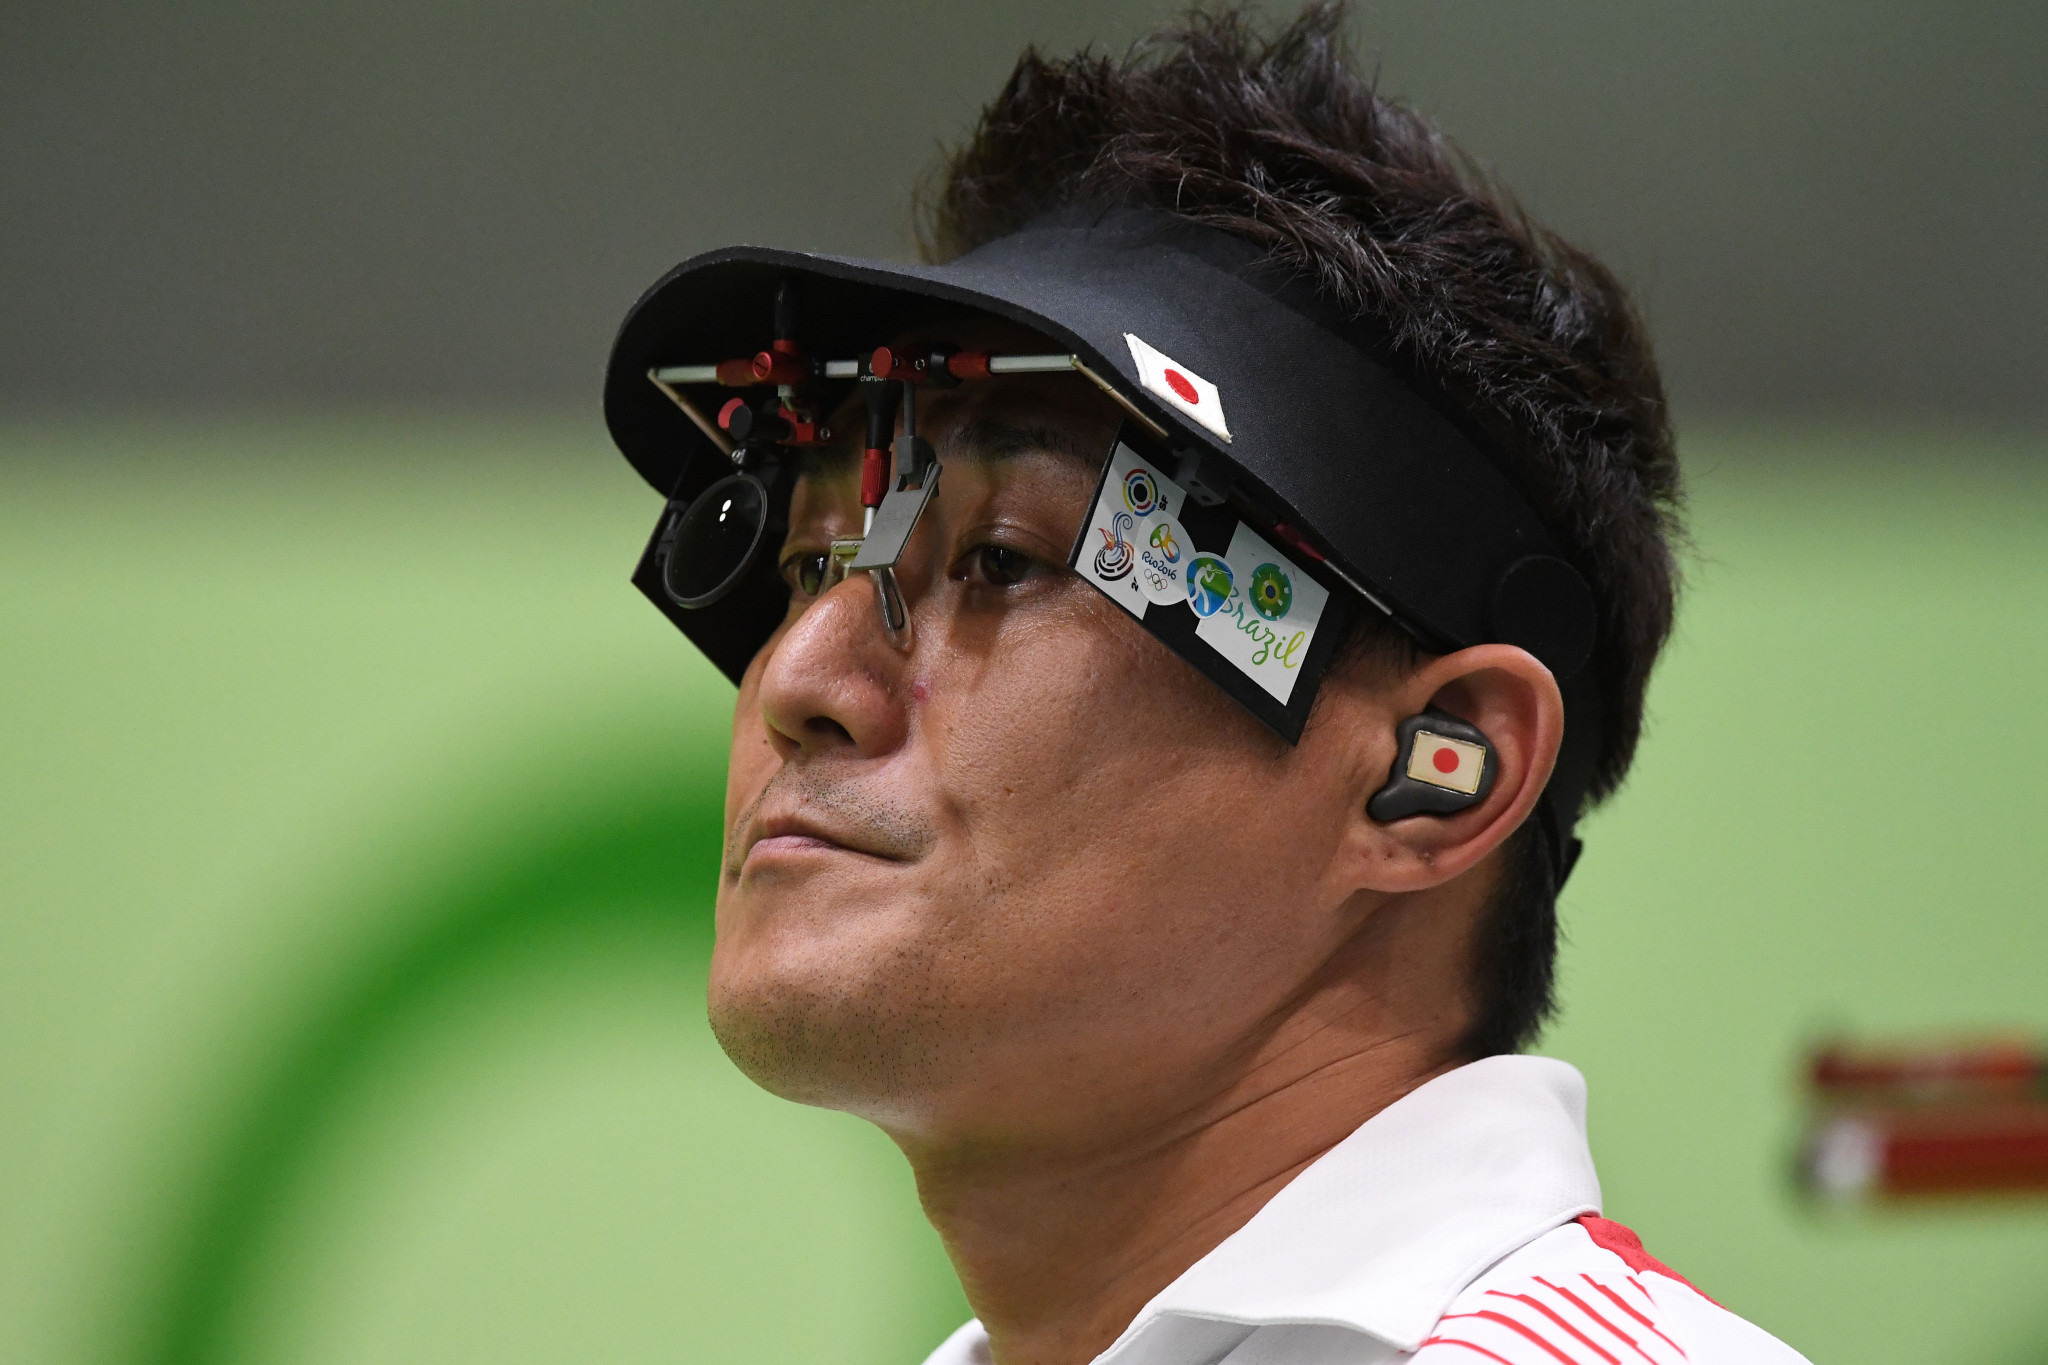 Tomoyuki and Rhode named ISSF shooters of the year